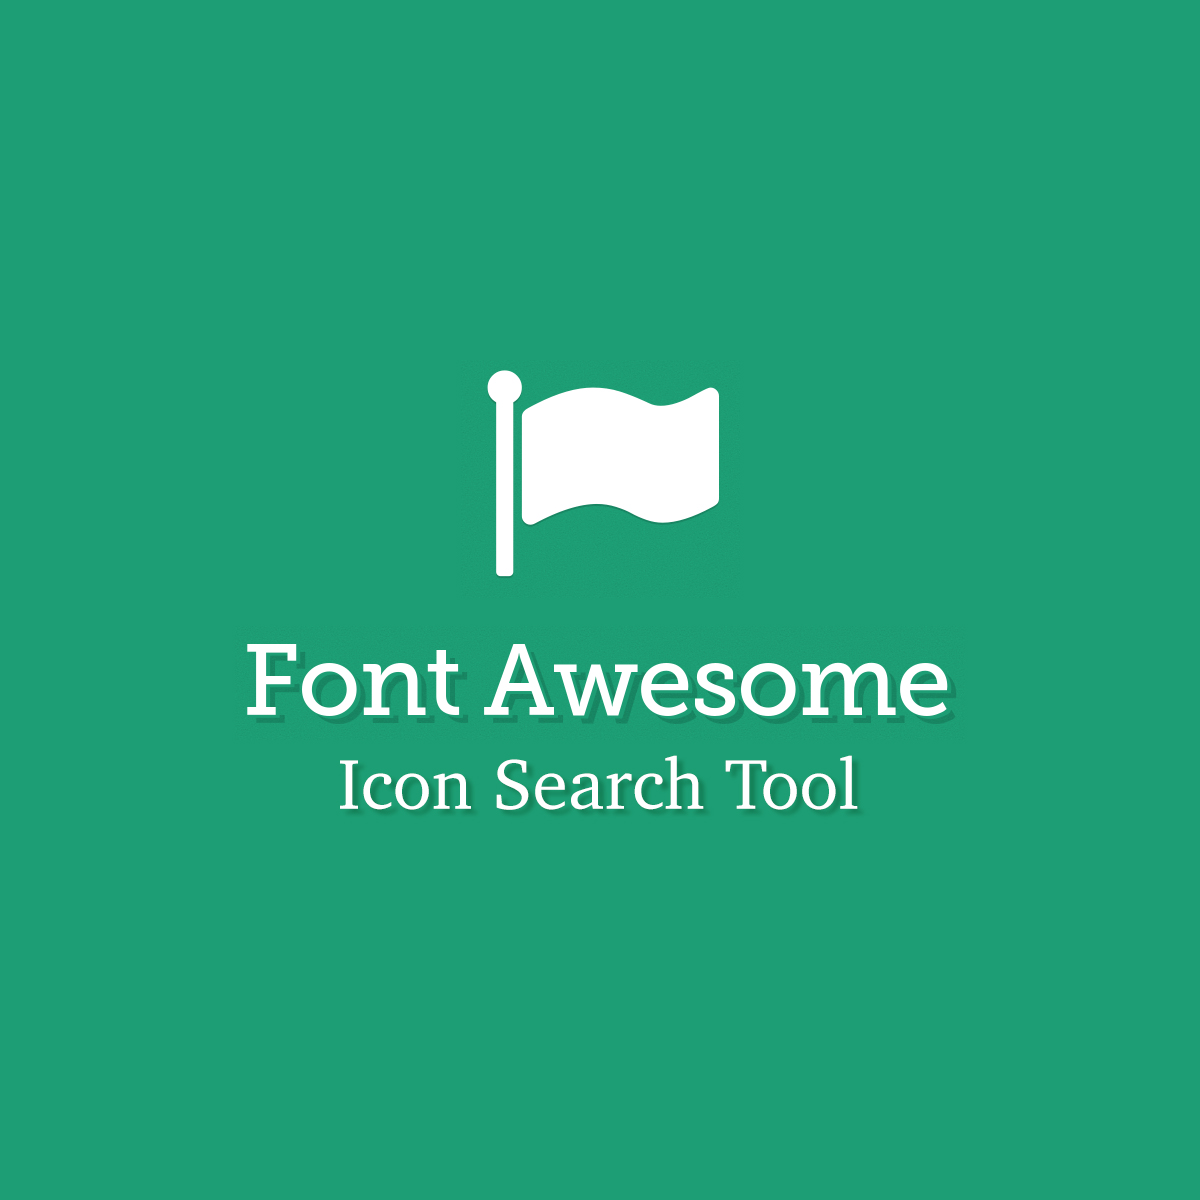 app image font awesome v4 7 0 icon search tool Transducer Wiring-Diagram at mifinder.co